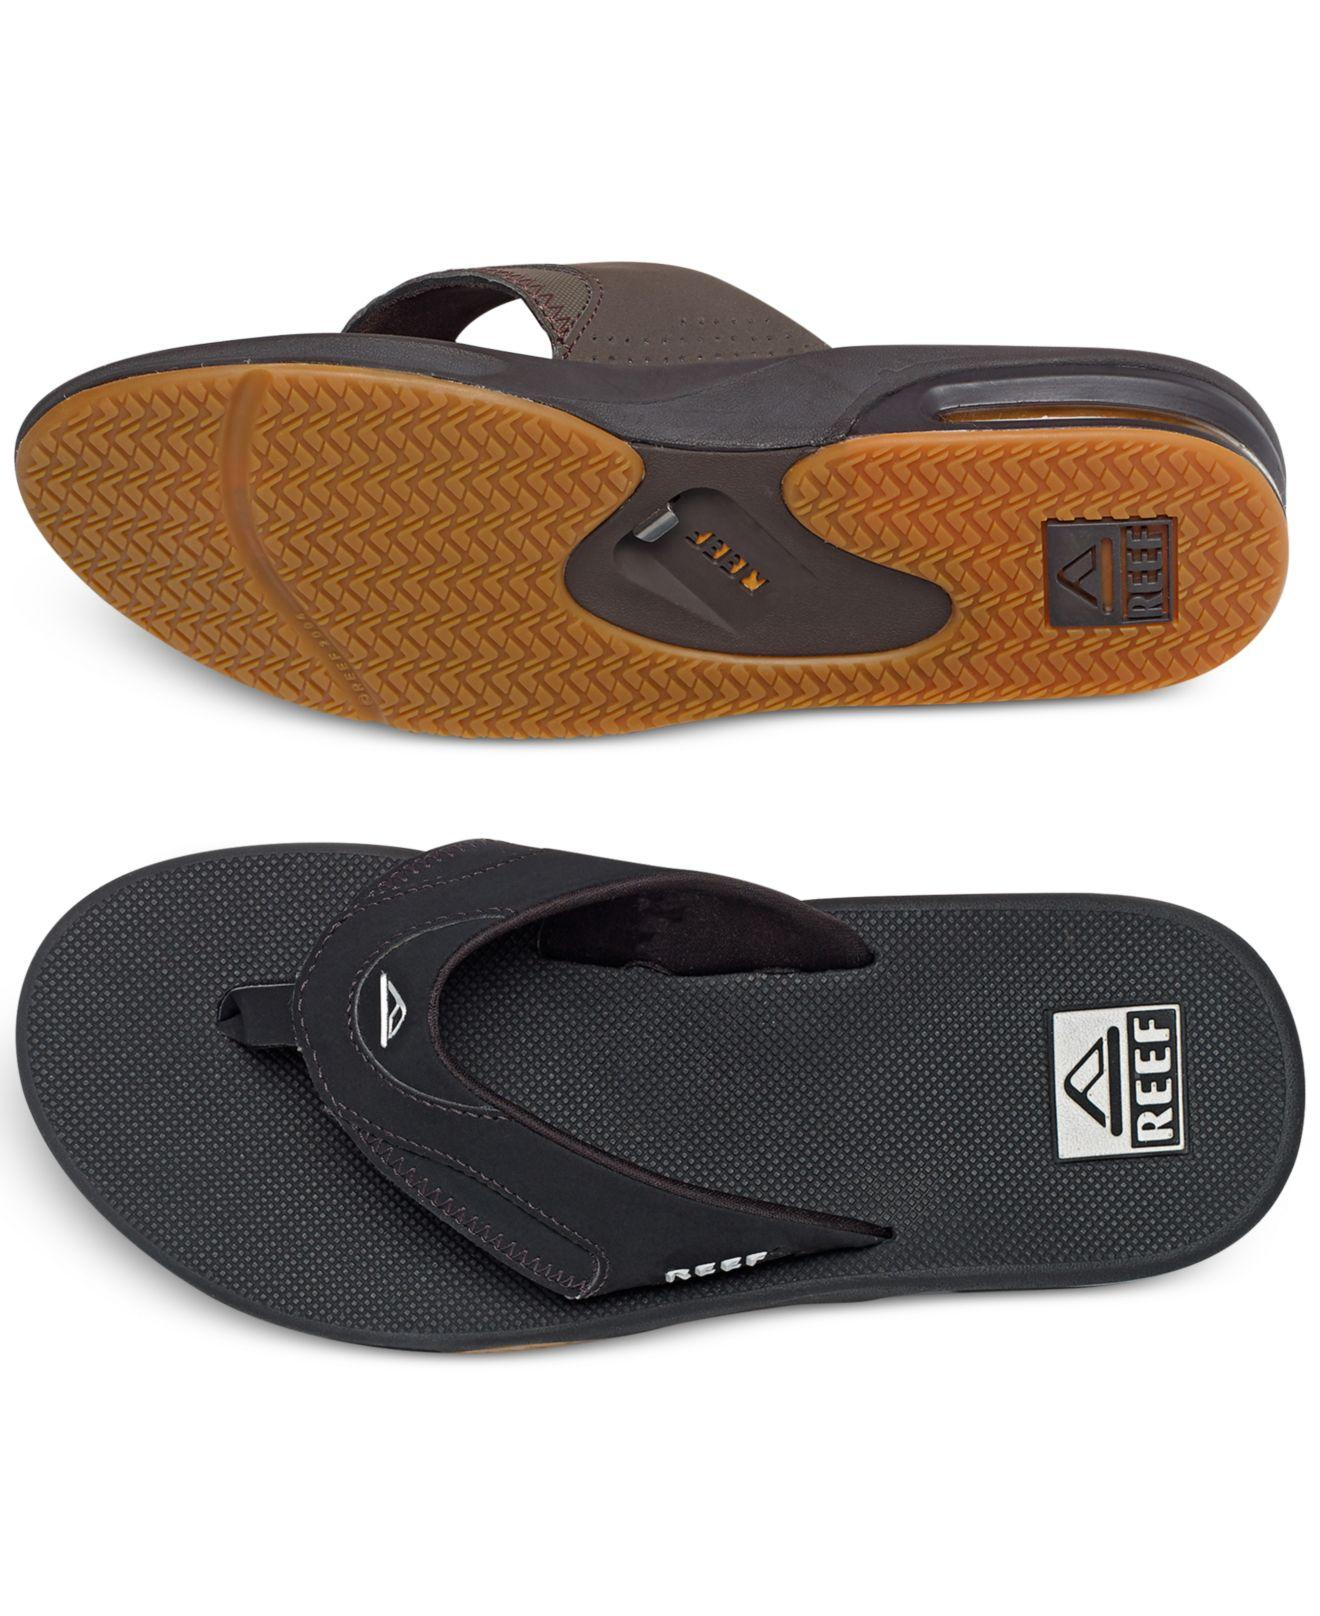 reef fanning thong sandals with bottle opener in black for men lyst. Black Bedroom Furniture Sets. Home Design Ideas